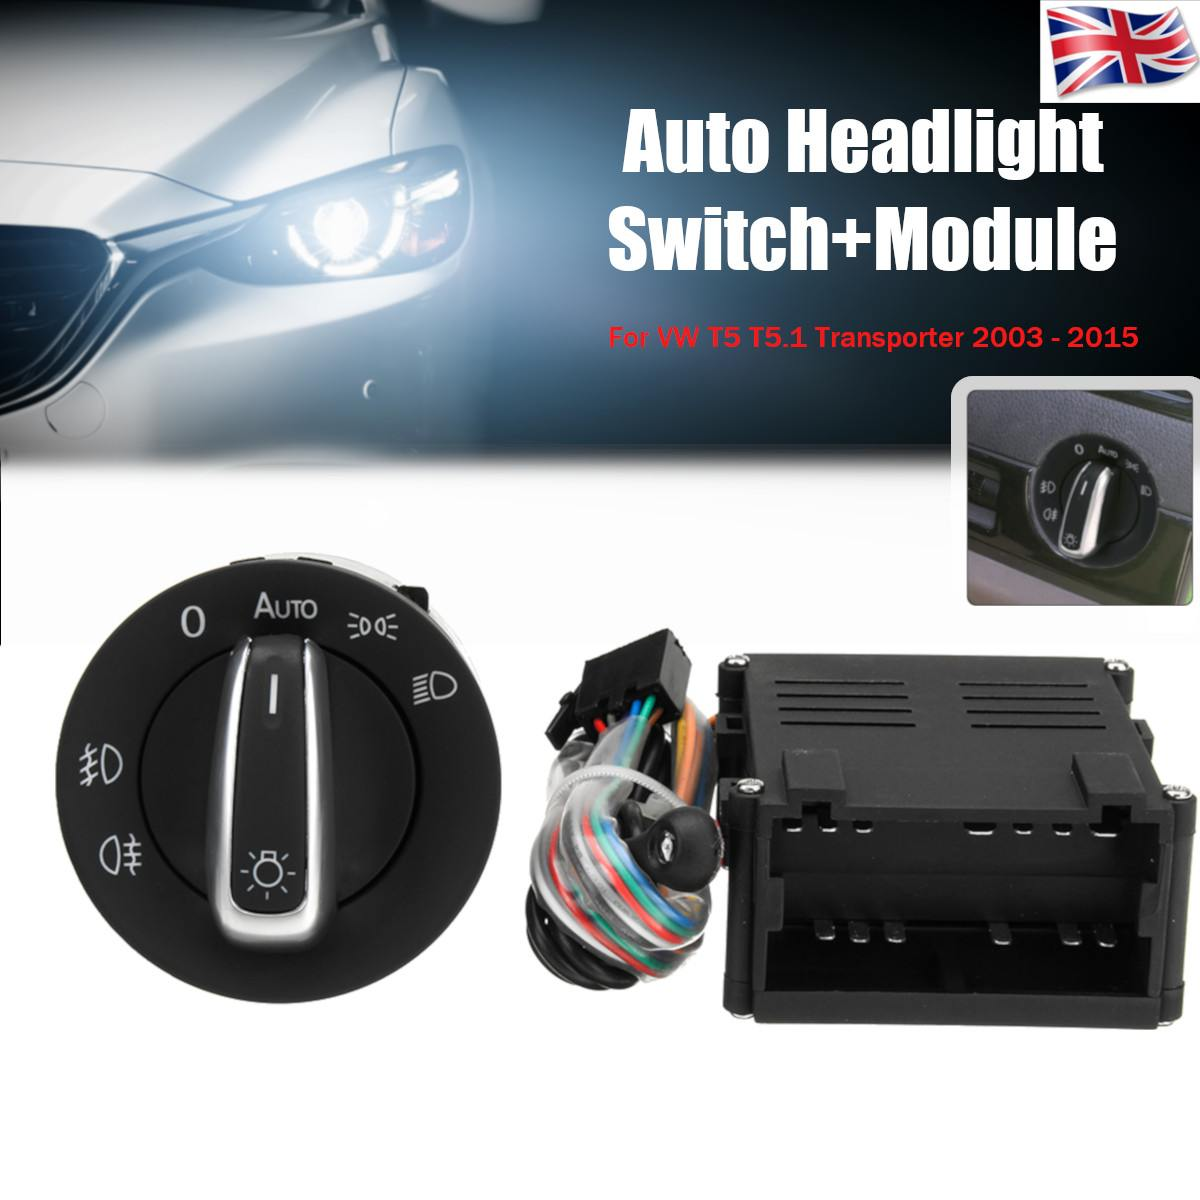 Car Auto Headlight Sensor HeadLamp Knob Switch Control Module for VW T5 T5.1 Transporter 2003 2015-in Car Switches & Relays from Automobiles & Motorcycles    1